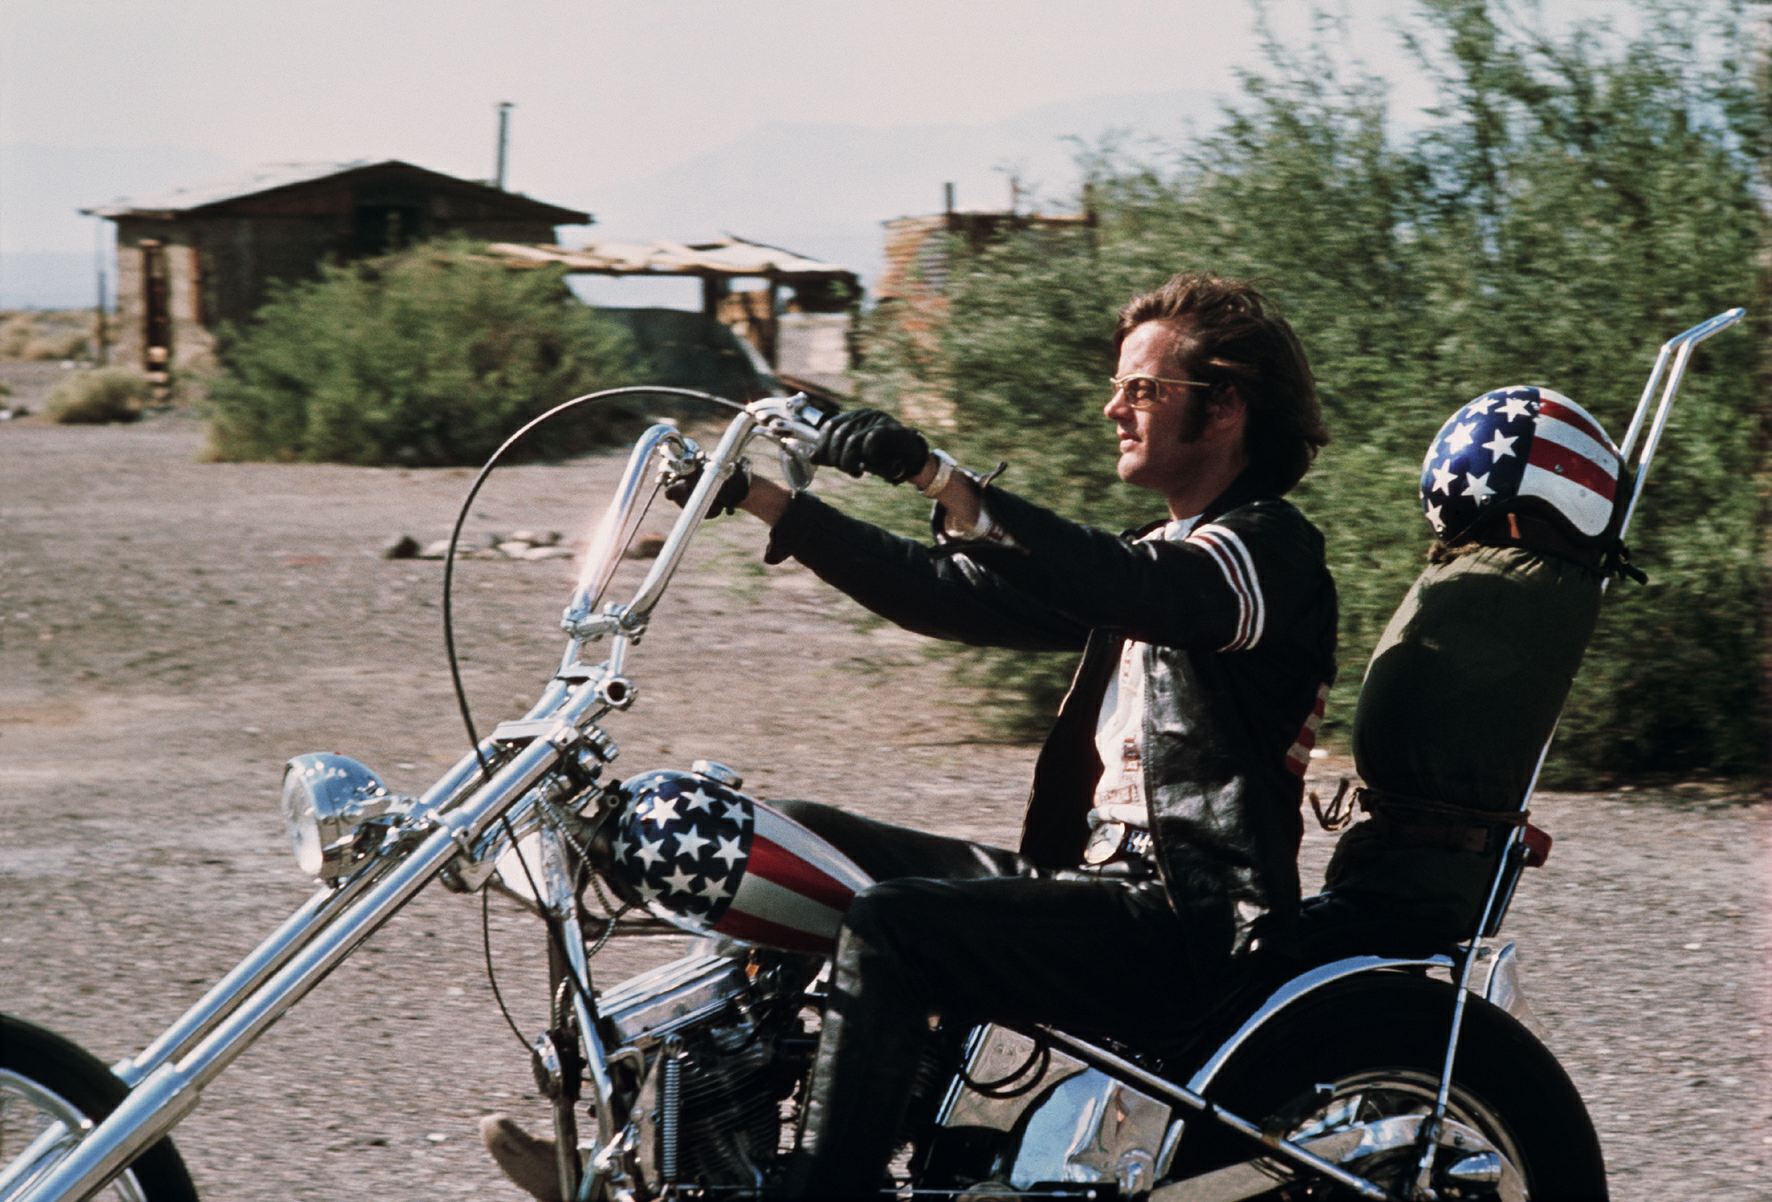 peter fonda 39 s easy rider harley will be auctioned autoevolution. Black Bedroom Furniture Sets. Home Design Ideas